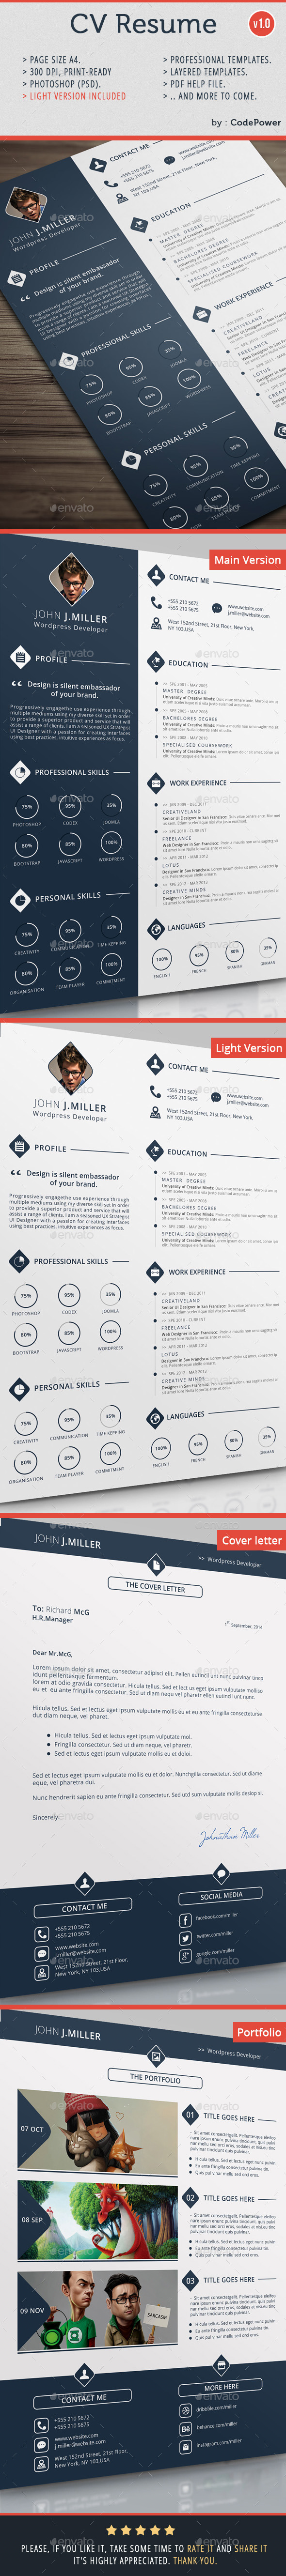 GraphicRiver CV Resume 8886019